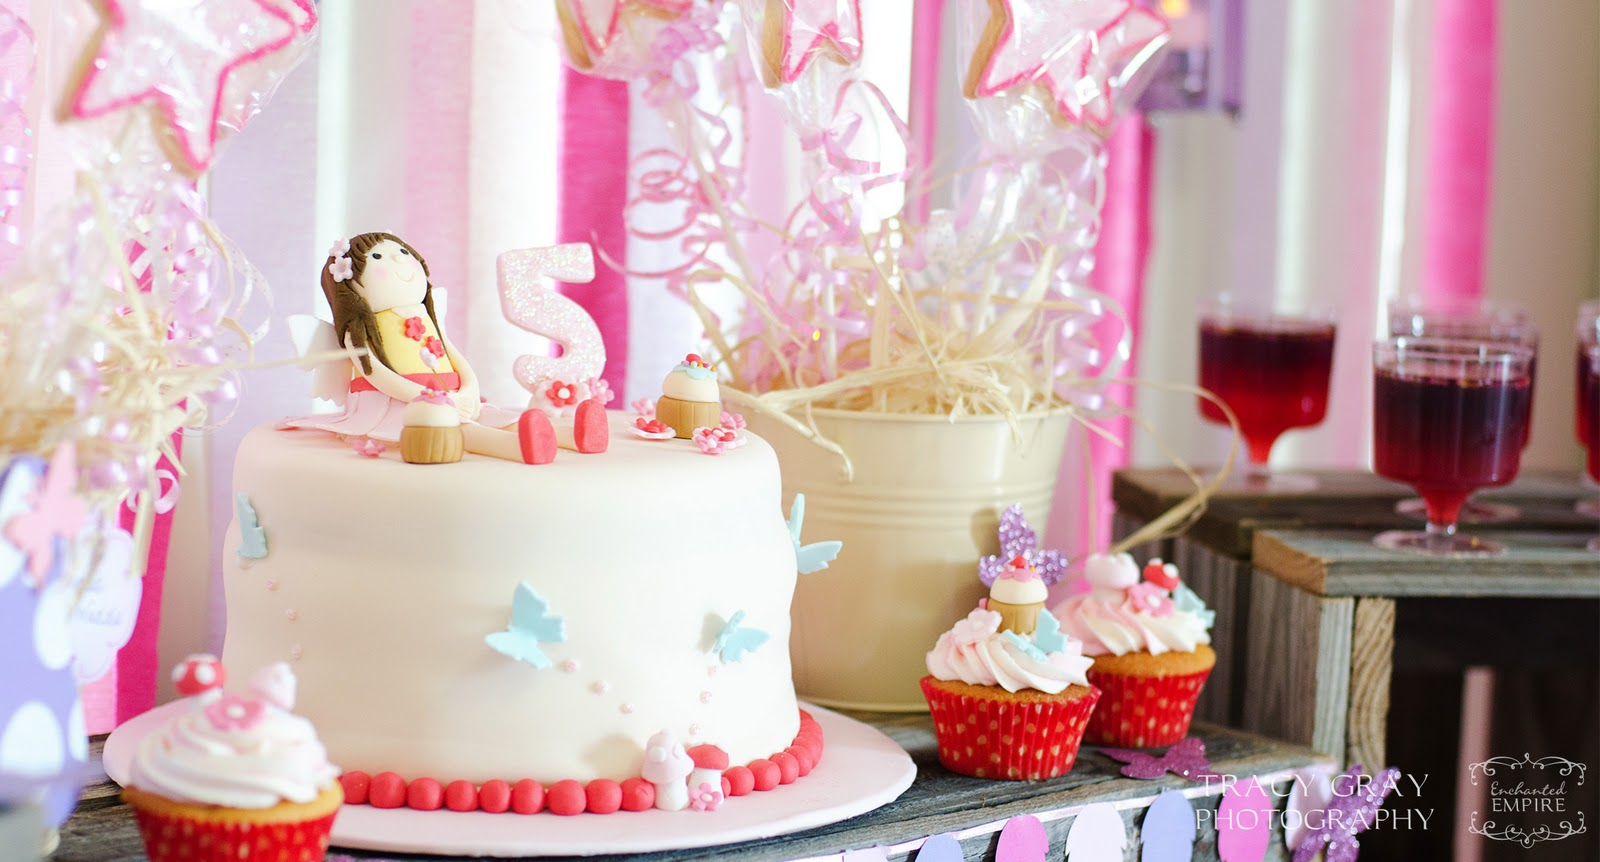 Kara s Party Ideas Enchanted Fairy Birthday Party Kara s ...